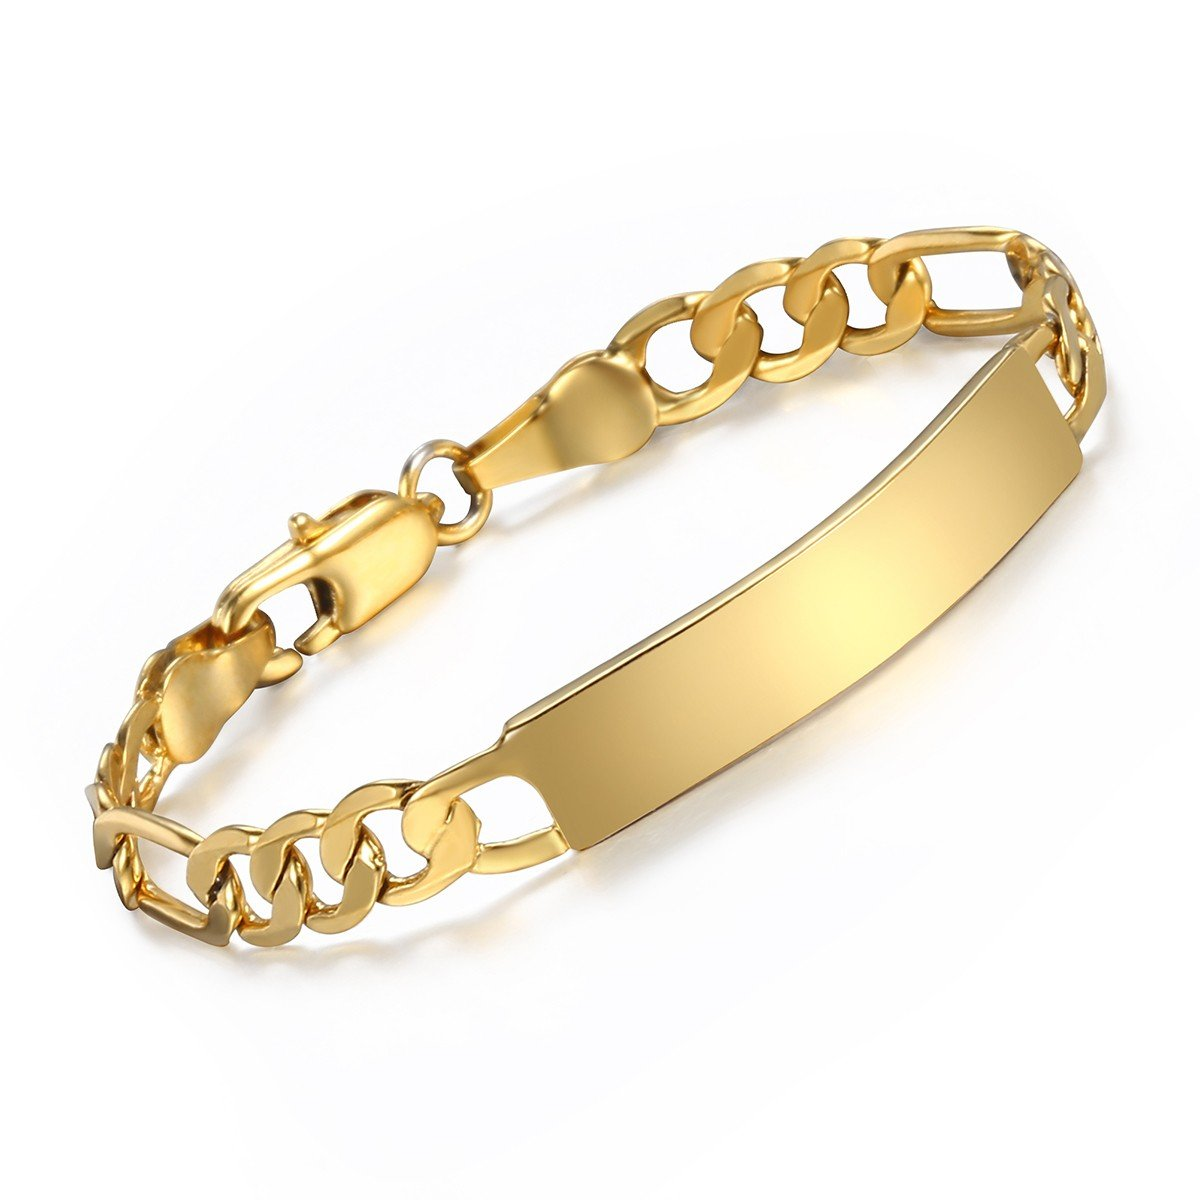 Trendsmax Yellow Gold Plated ID Bracelet for Baby Figaro Figaro Chain Smooth Bangle Link Fashion Jewelry 4.5inch GB426B